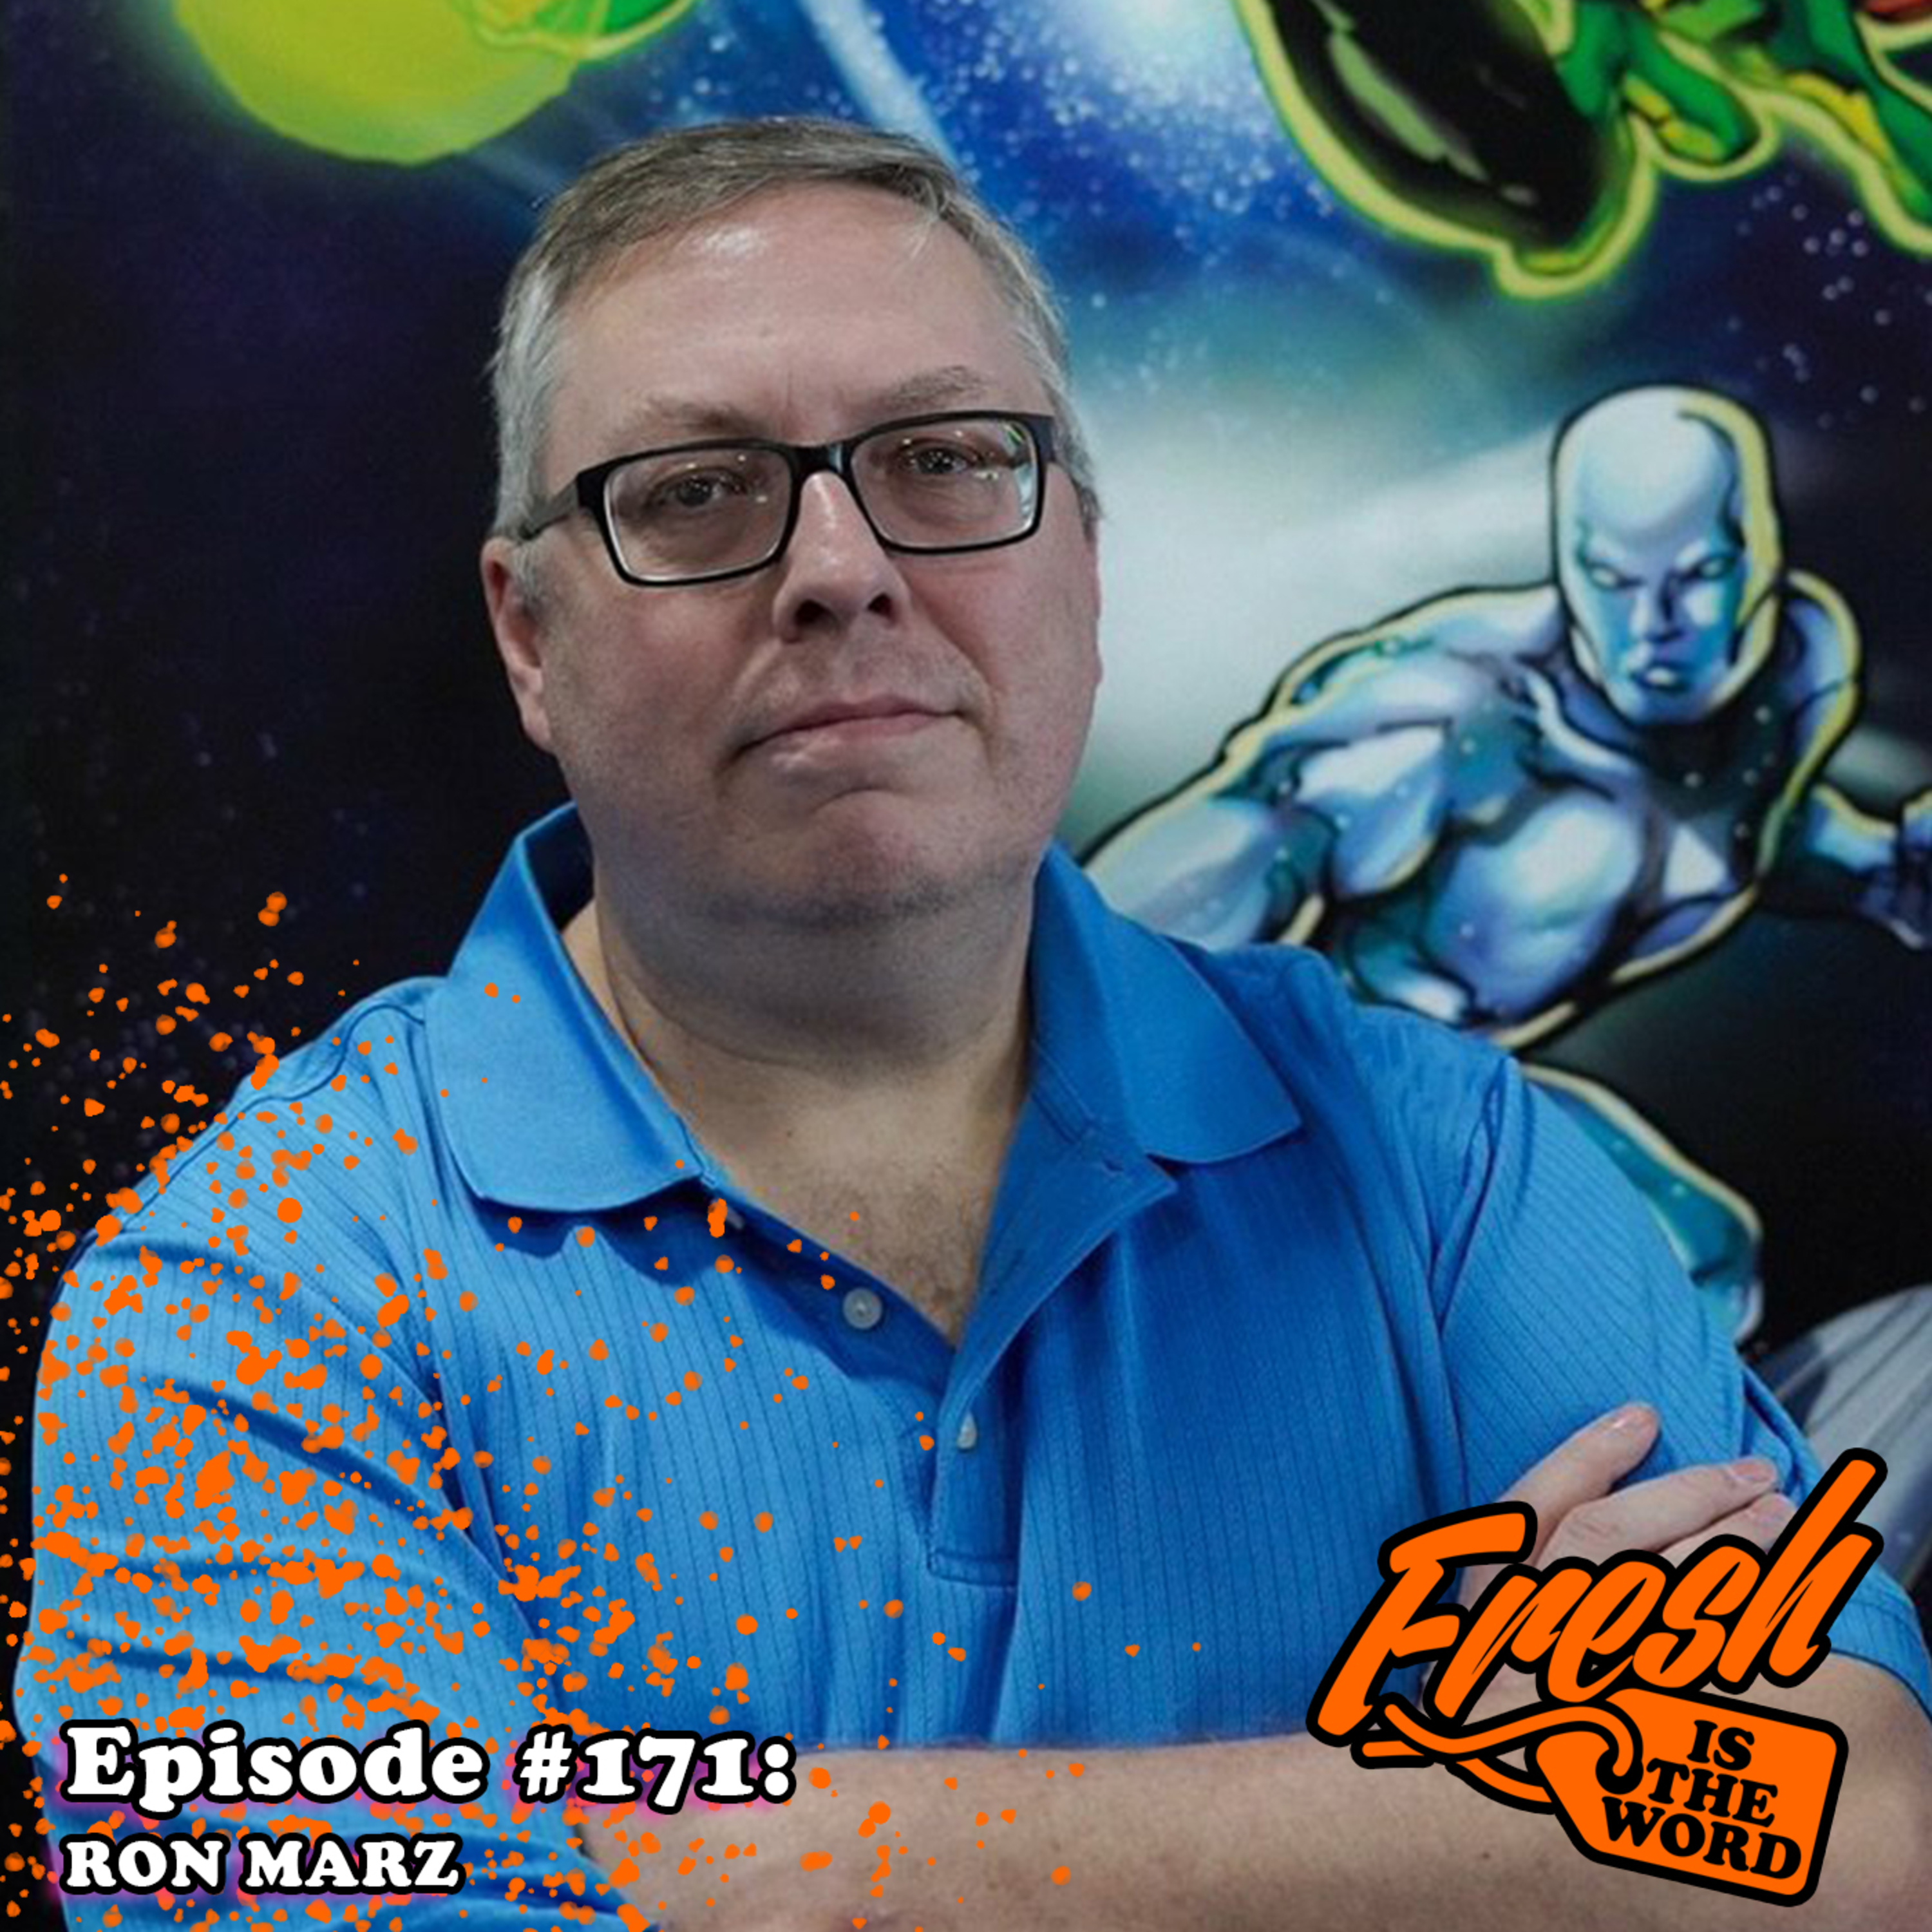 """Episode #171: Ron Marz - Comic Book Writer, Known for """"Green Lantern"""", """"Silver Surfer"""", and """"Witchblade"""", Currently Writing """"Turok"""" for Dynamite"""